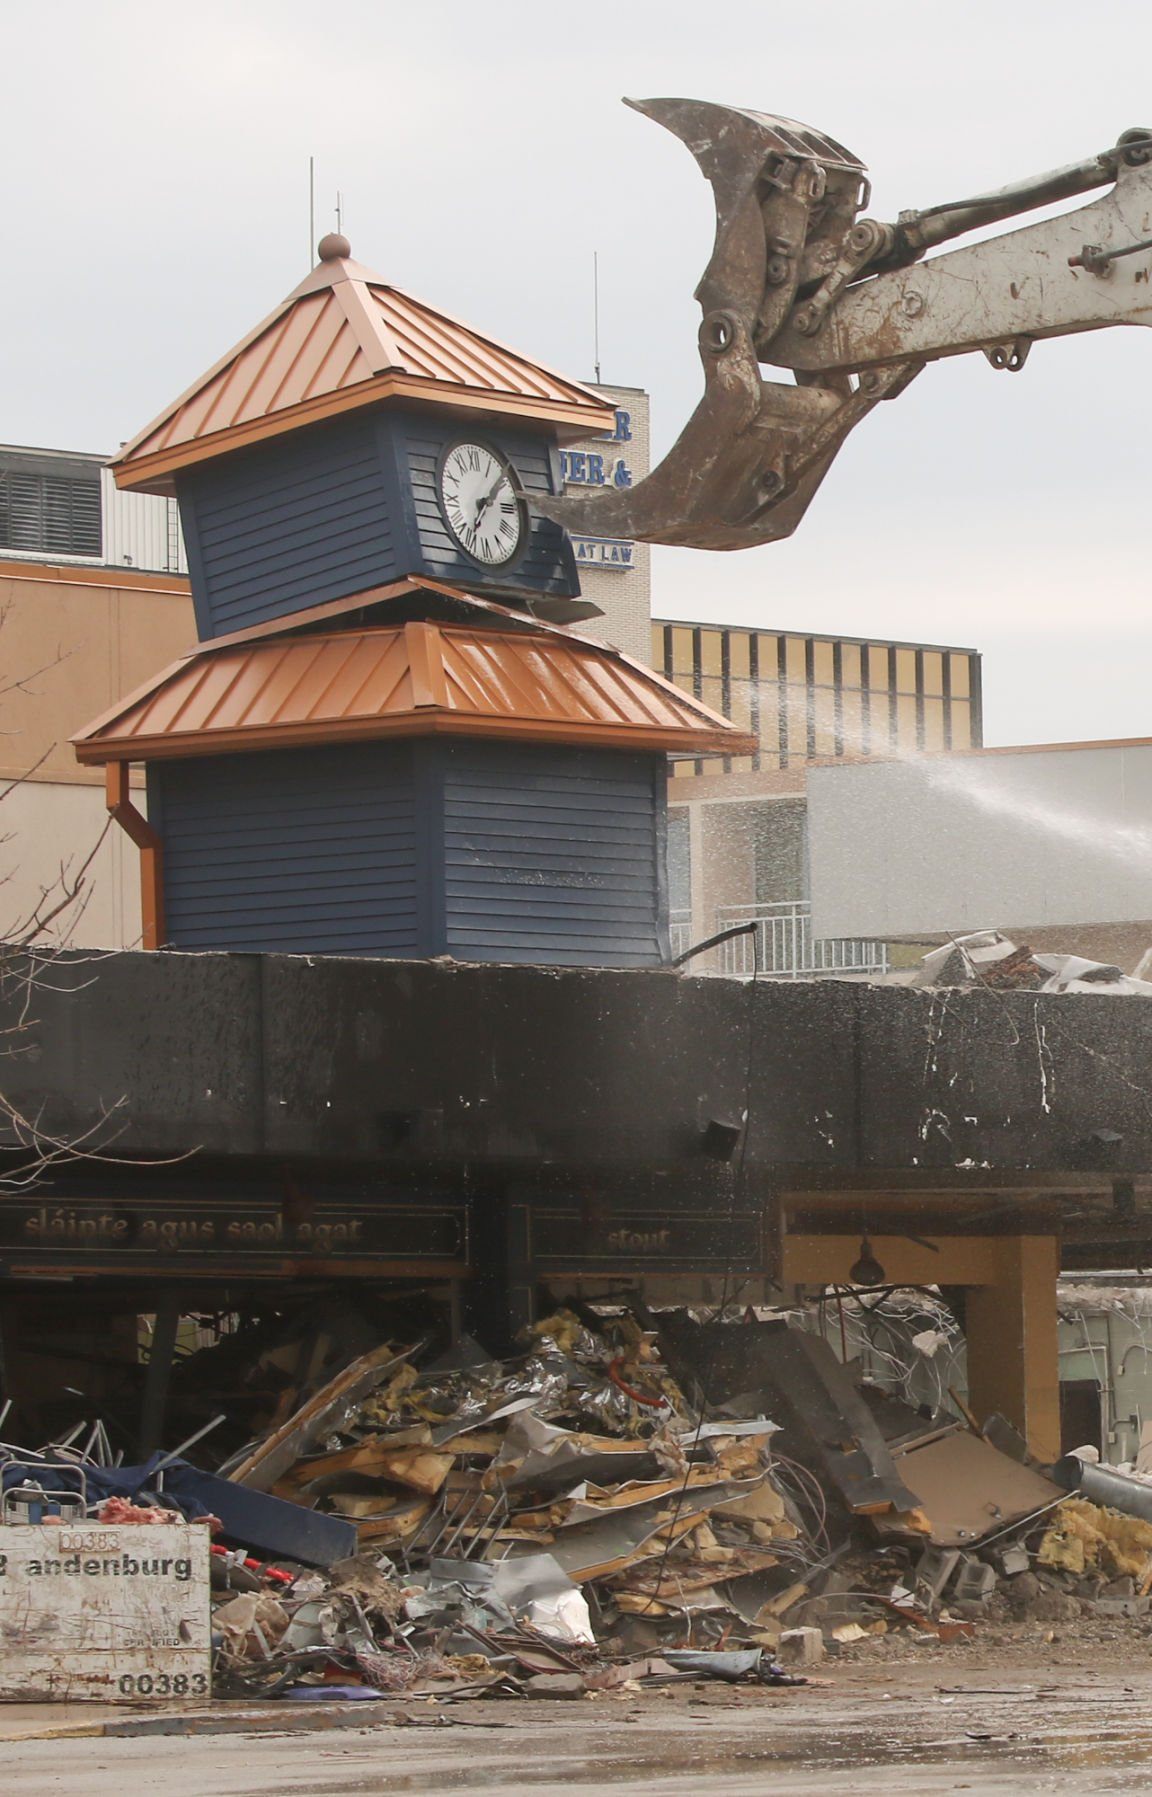 Demolition of iconic clocktower at Radisson Hotel